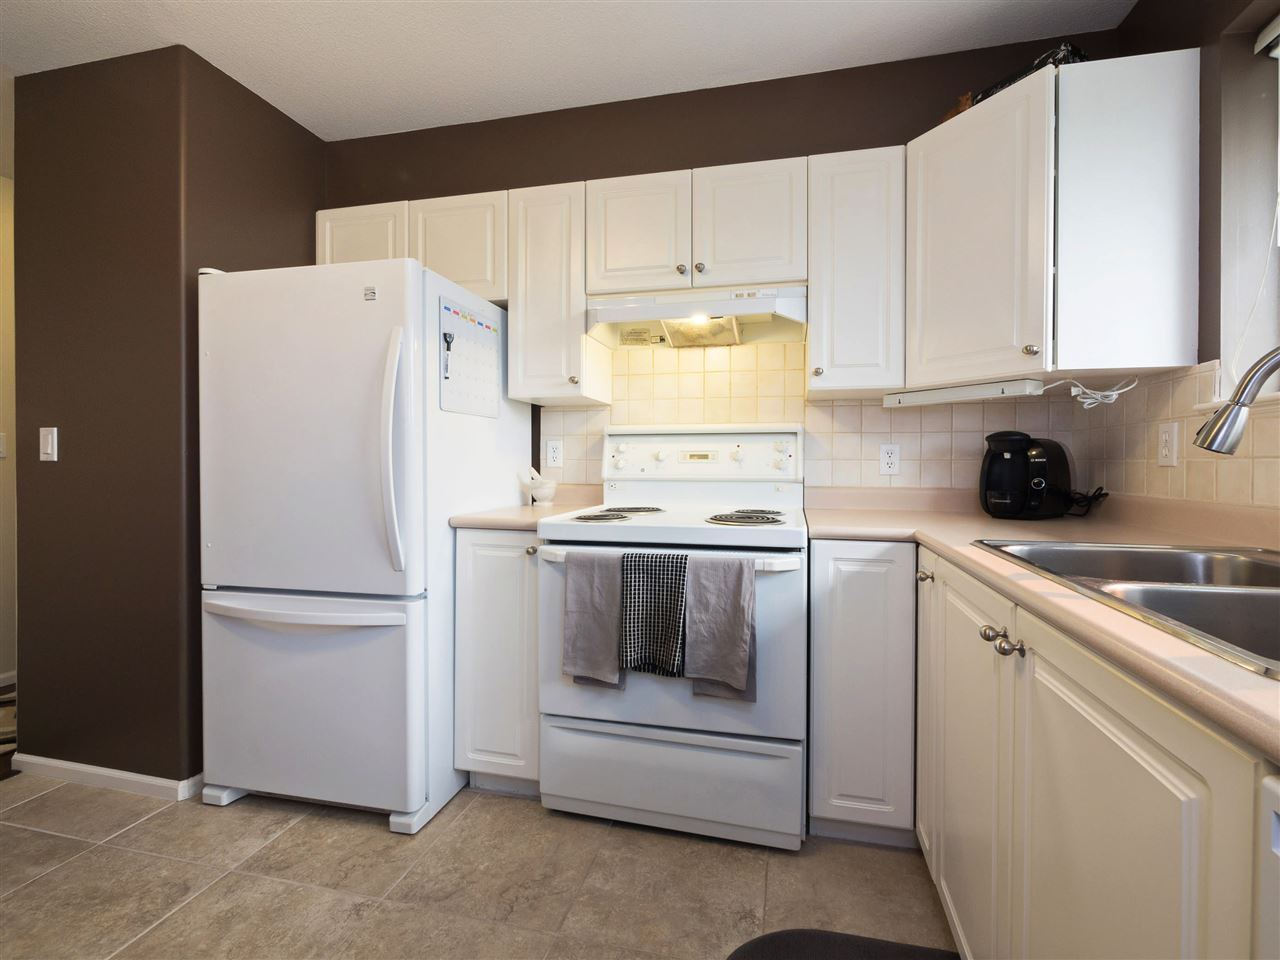 Condo Apartment at 301 1558 GRANT AVENUE, Unit 301, Port Coquitlam, British Columbia. Image 9